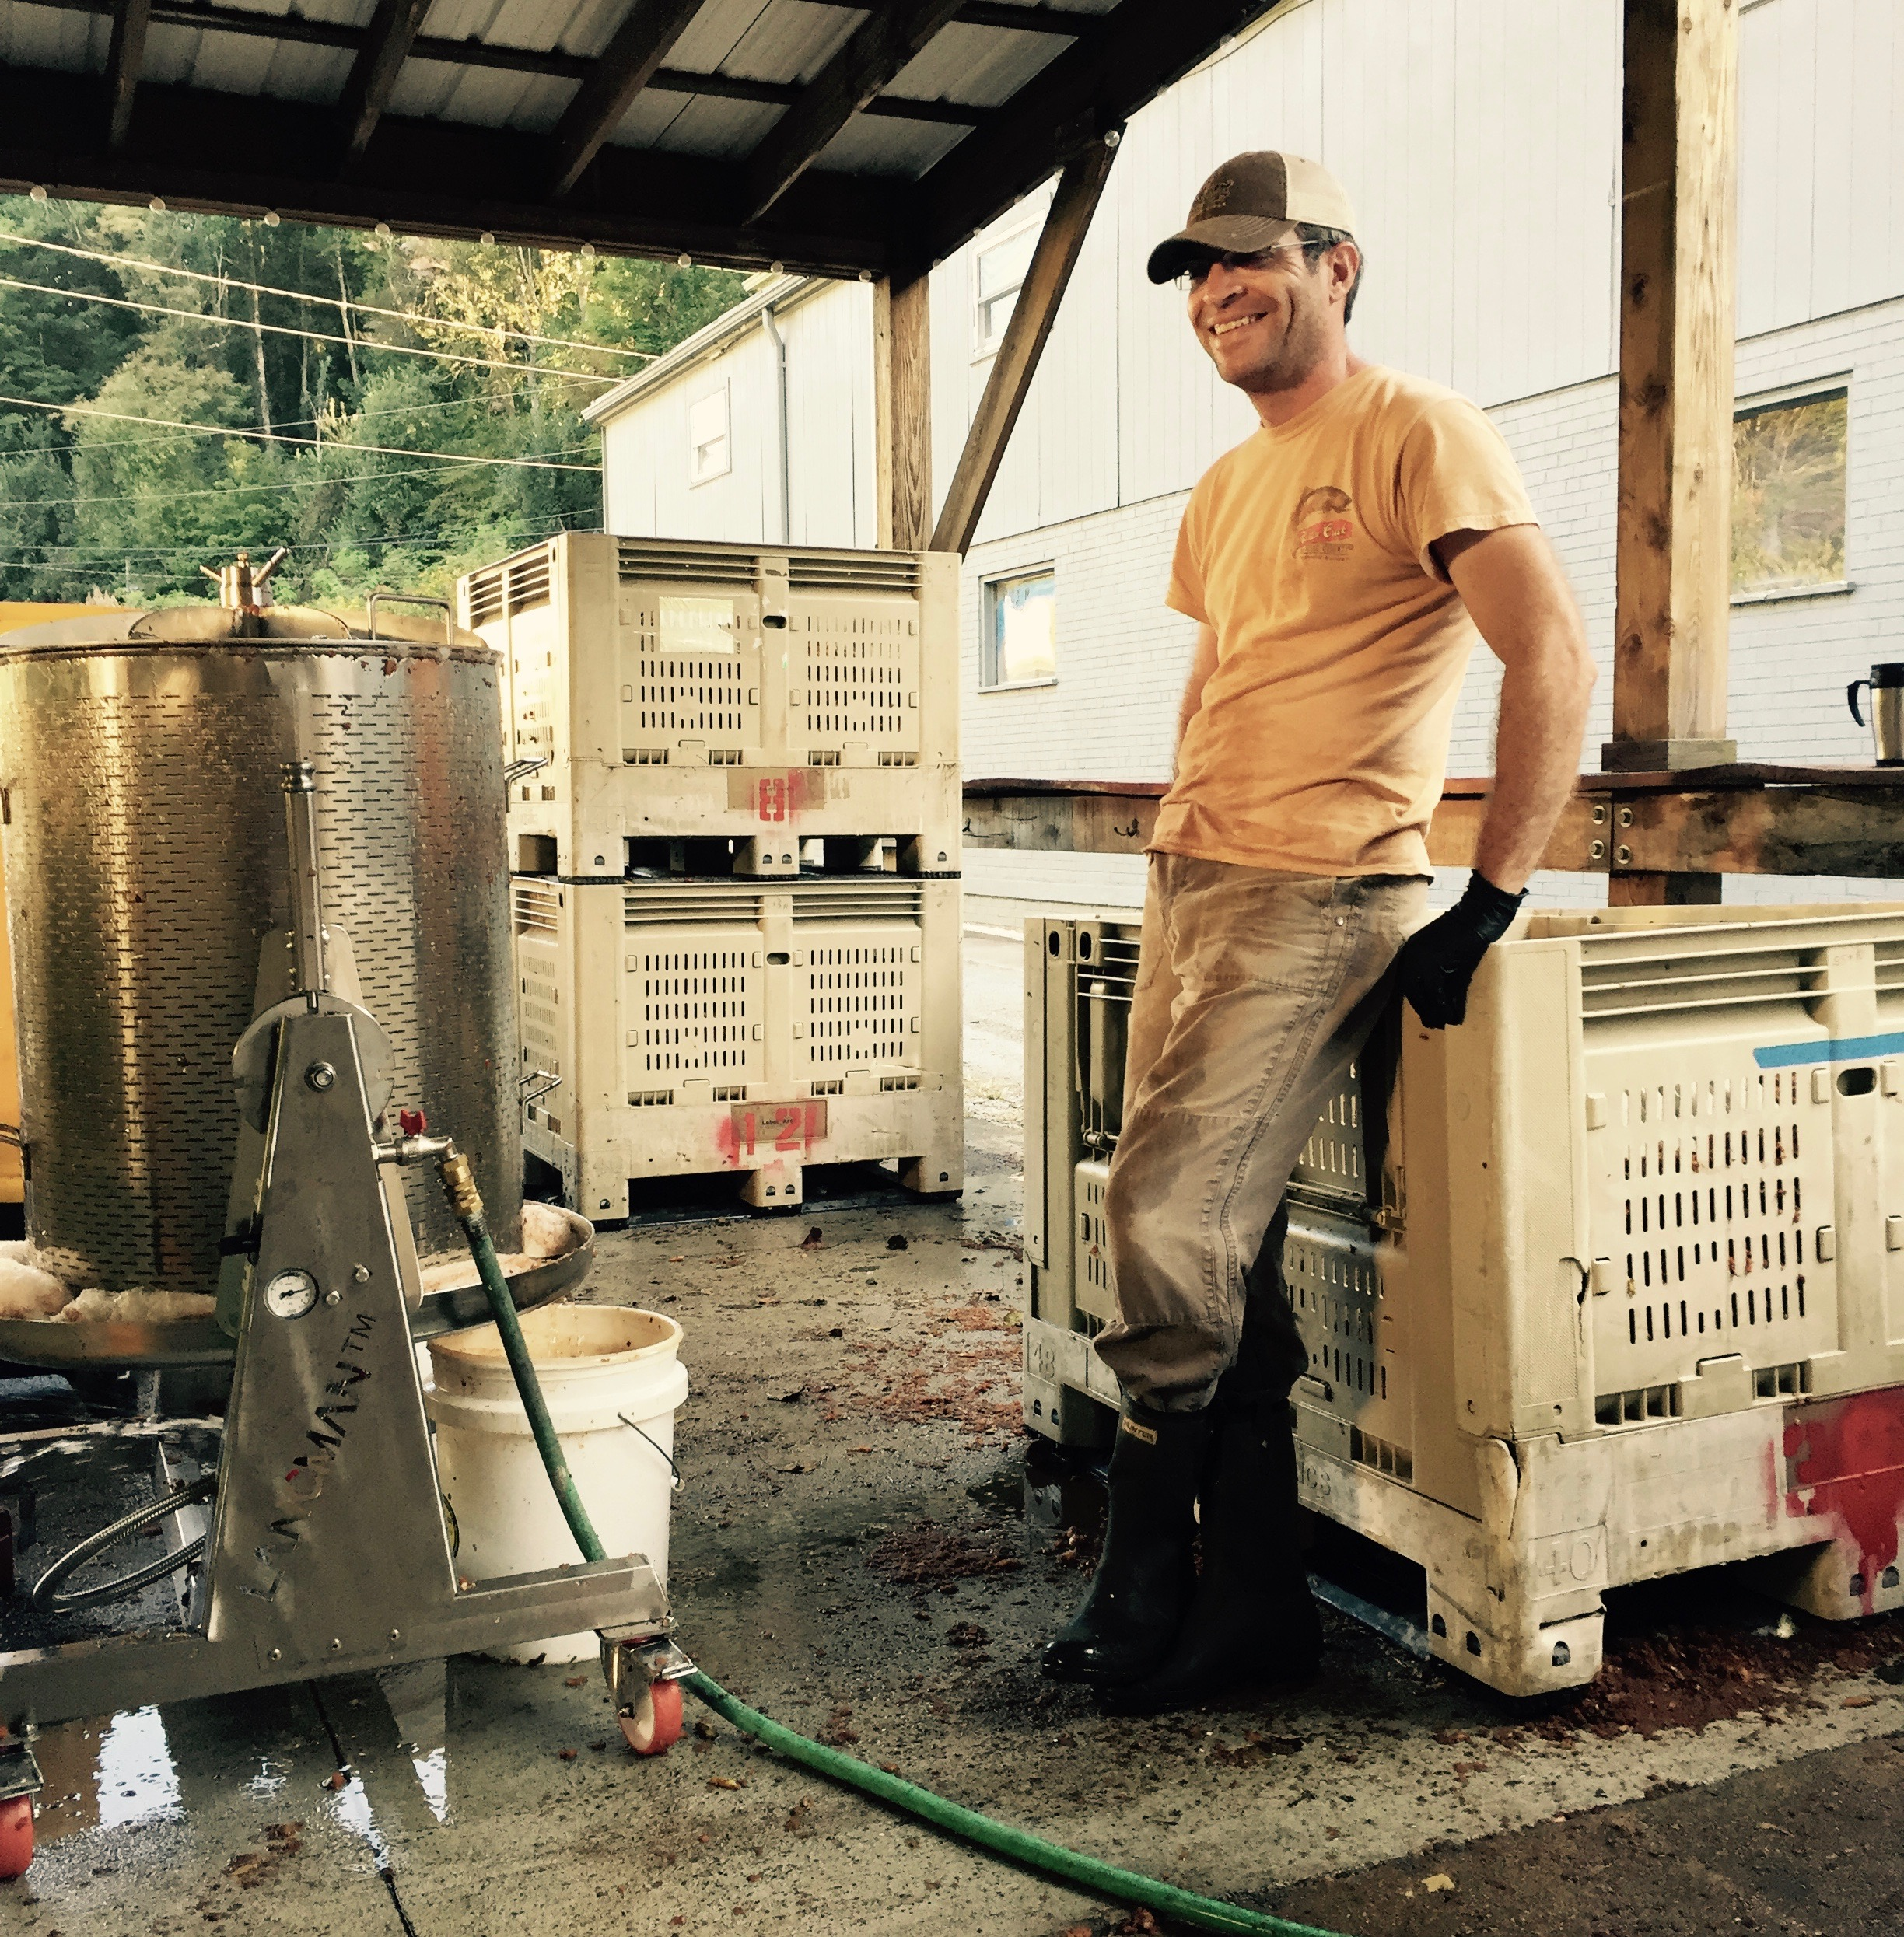 Pressing day at the cidery in Lansing, NC